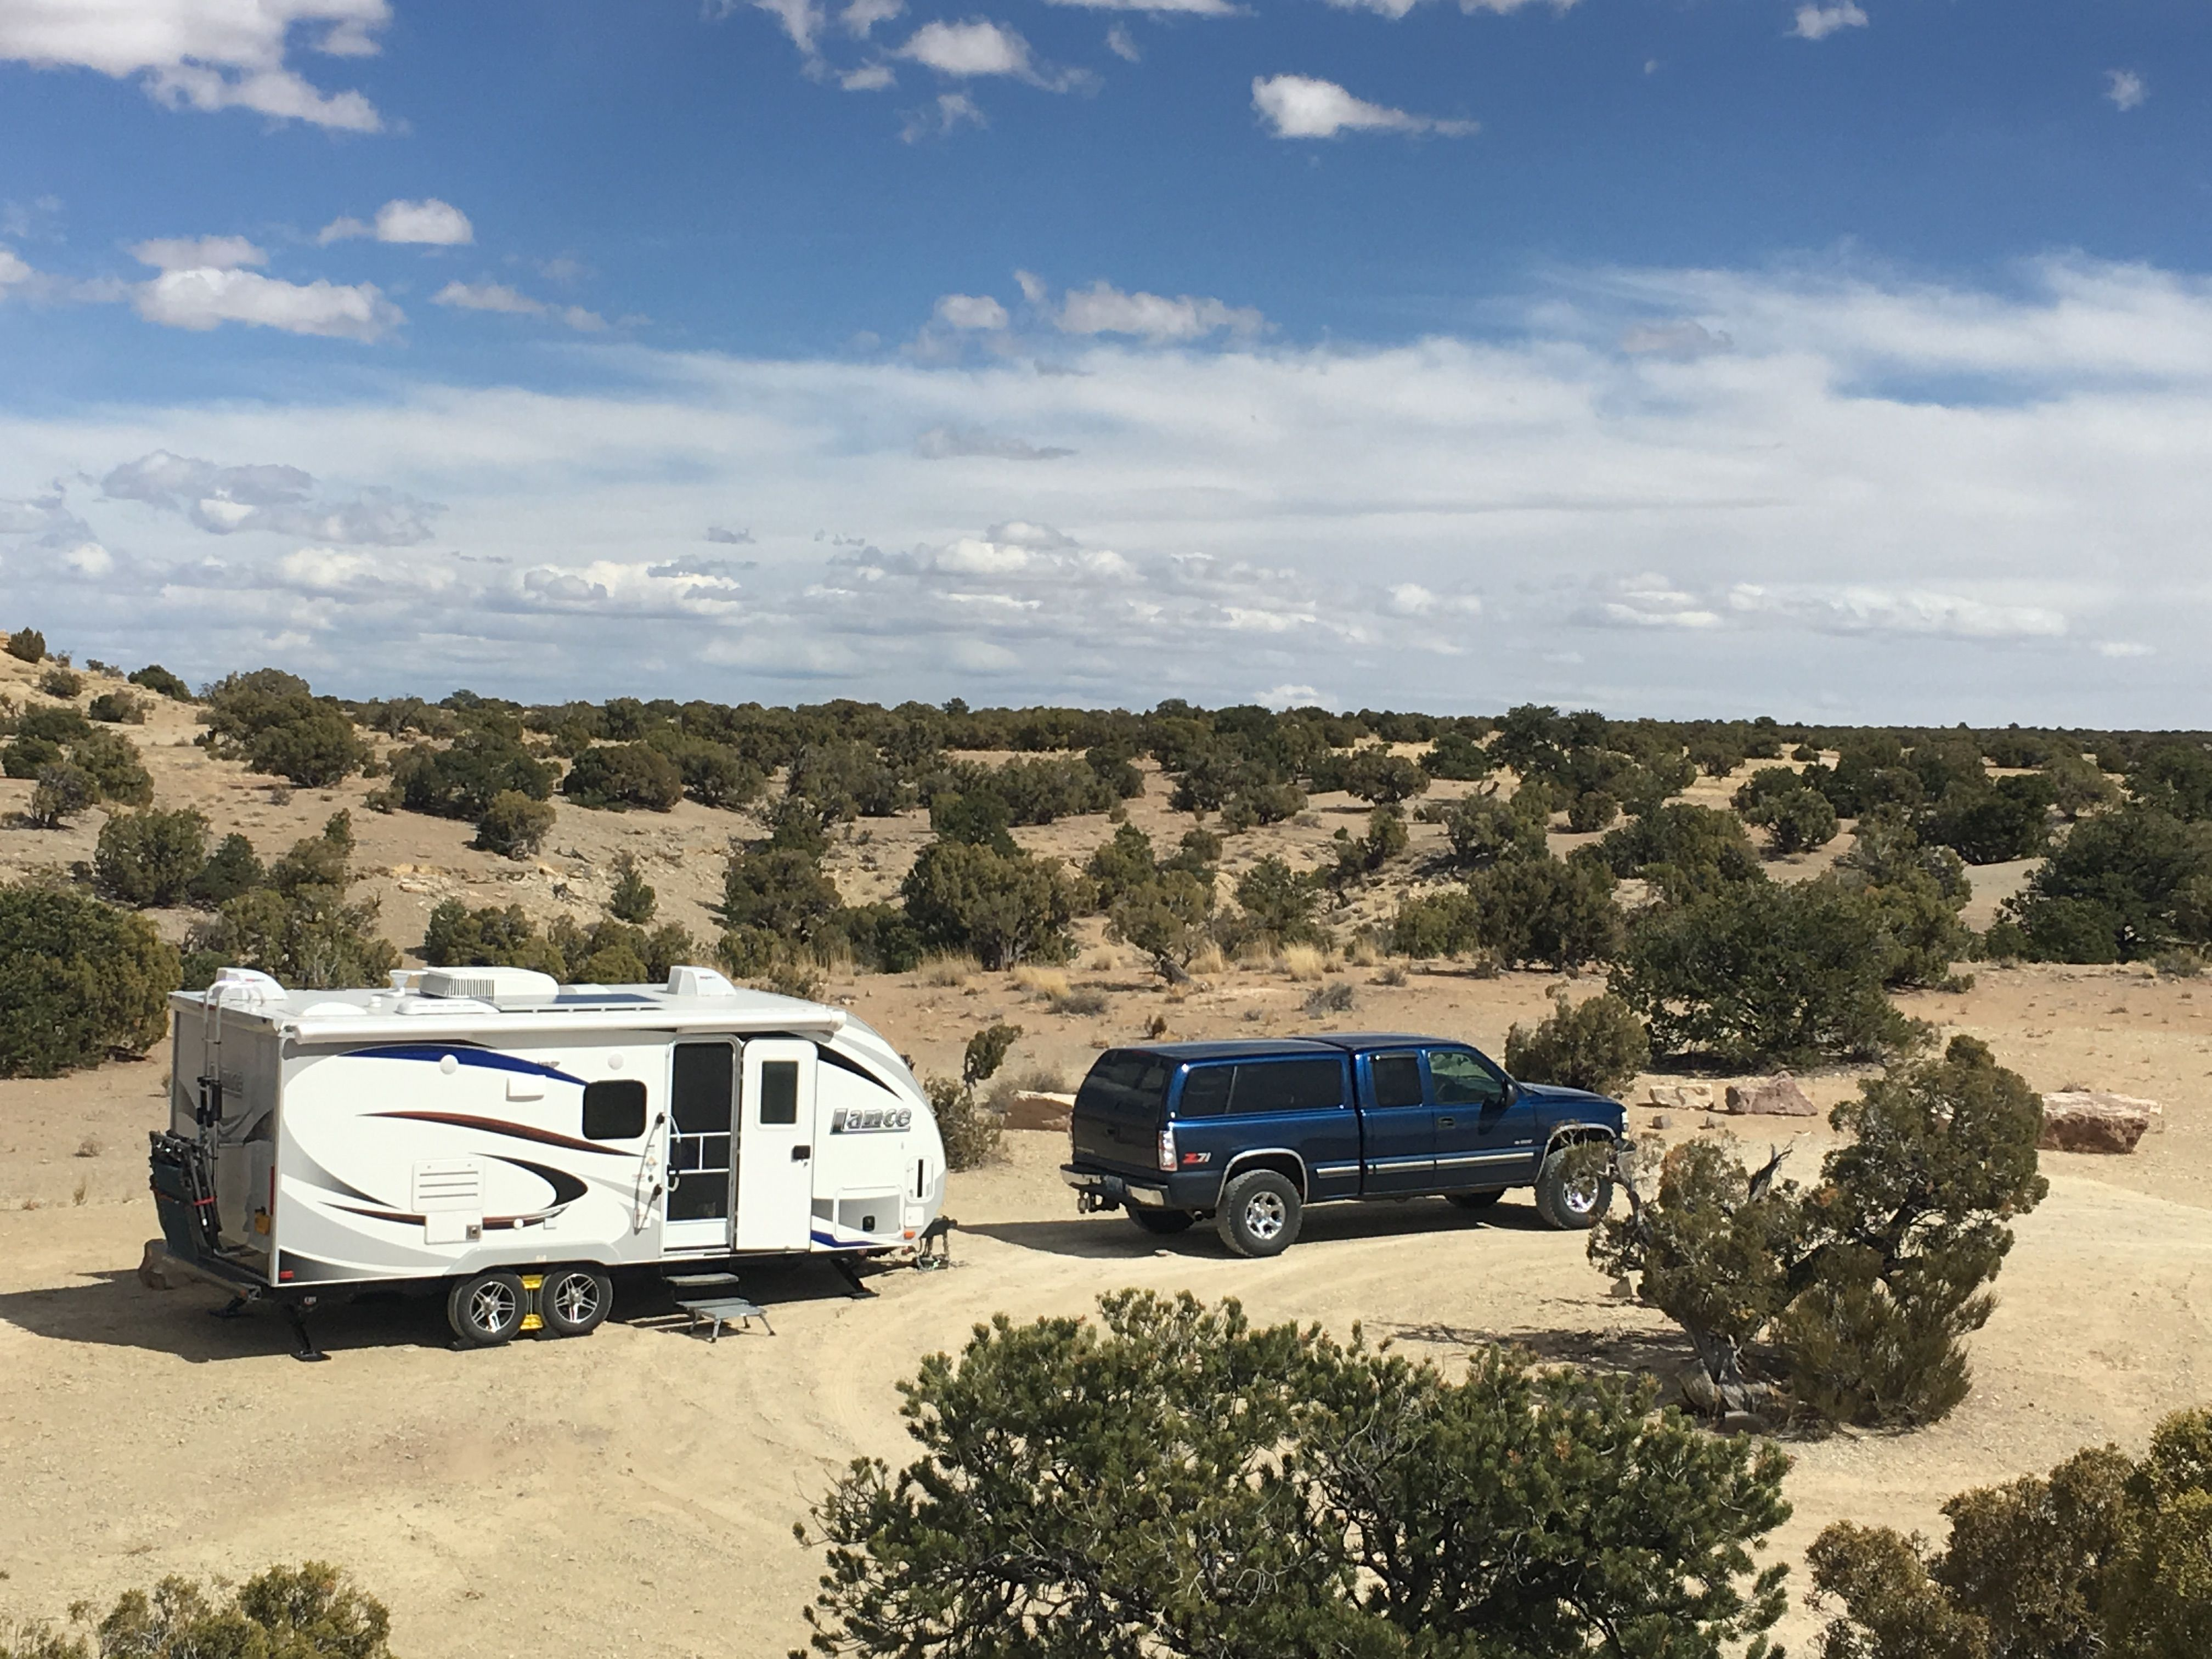 Single Post Campsite Recreational Vehicles Camping